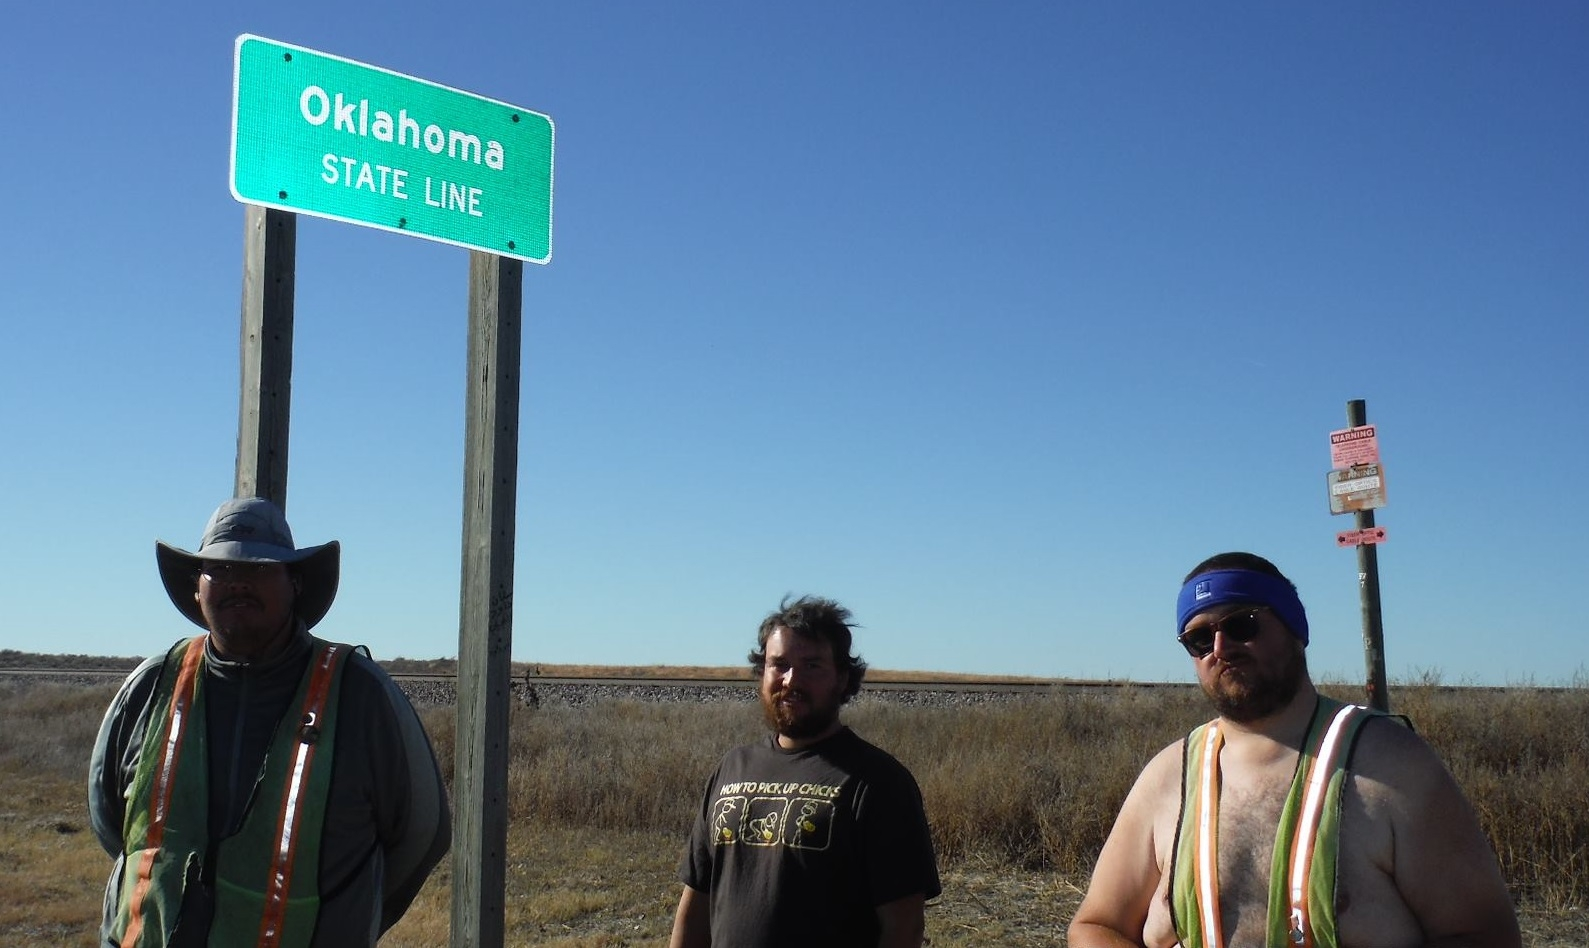 From left, Christopher Cooke, Joe Cooke and Jason Rogers at the Oklahoma state line.